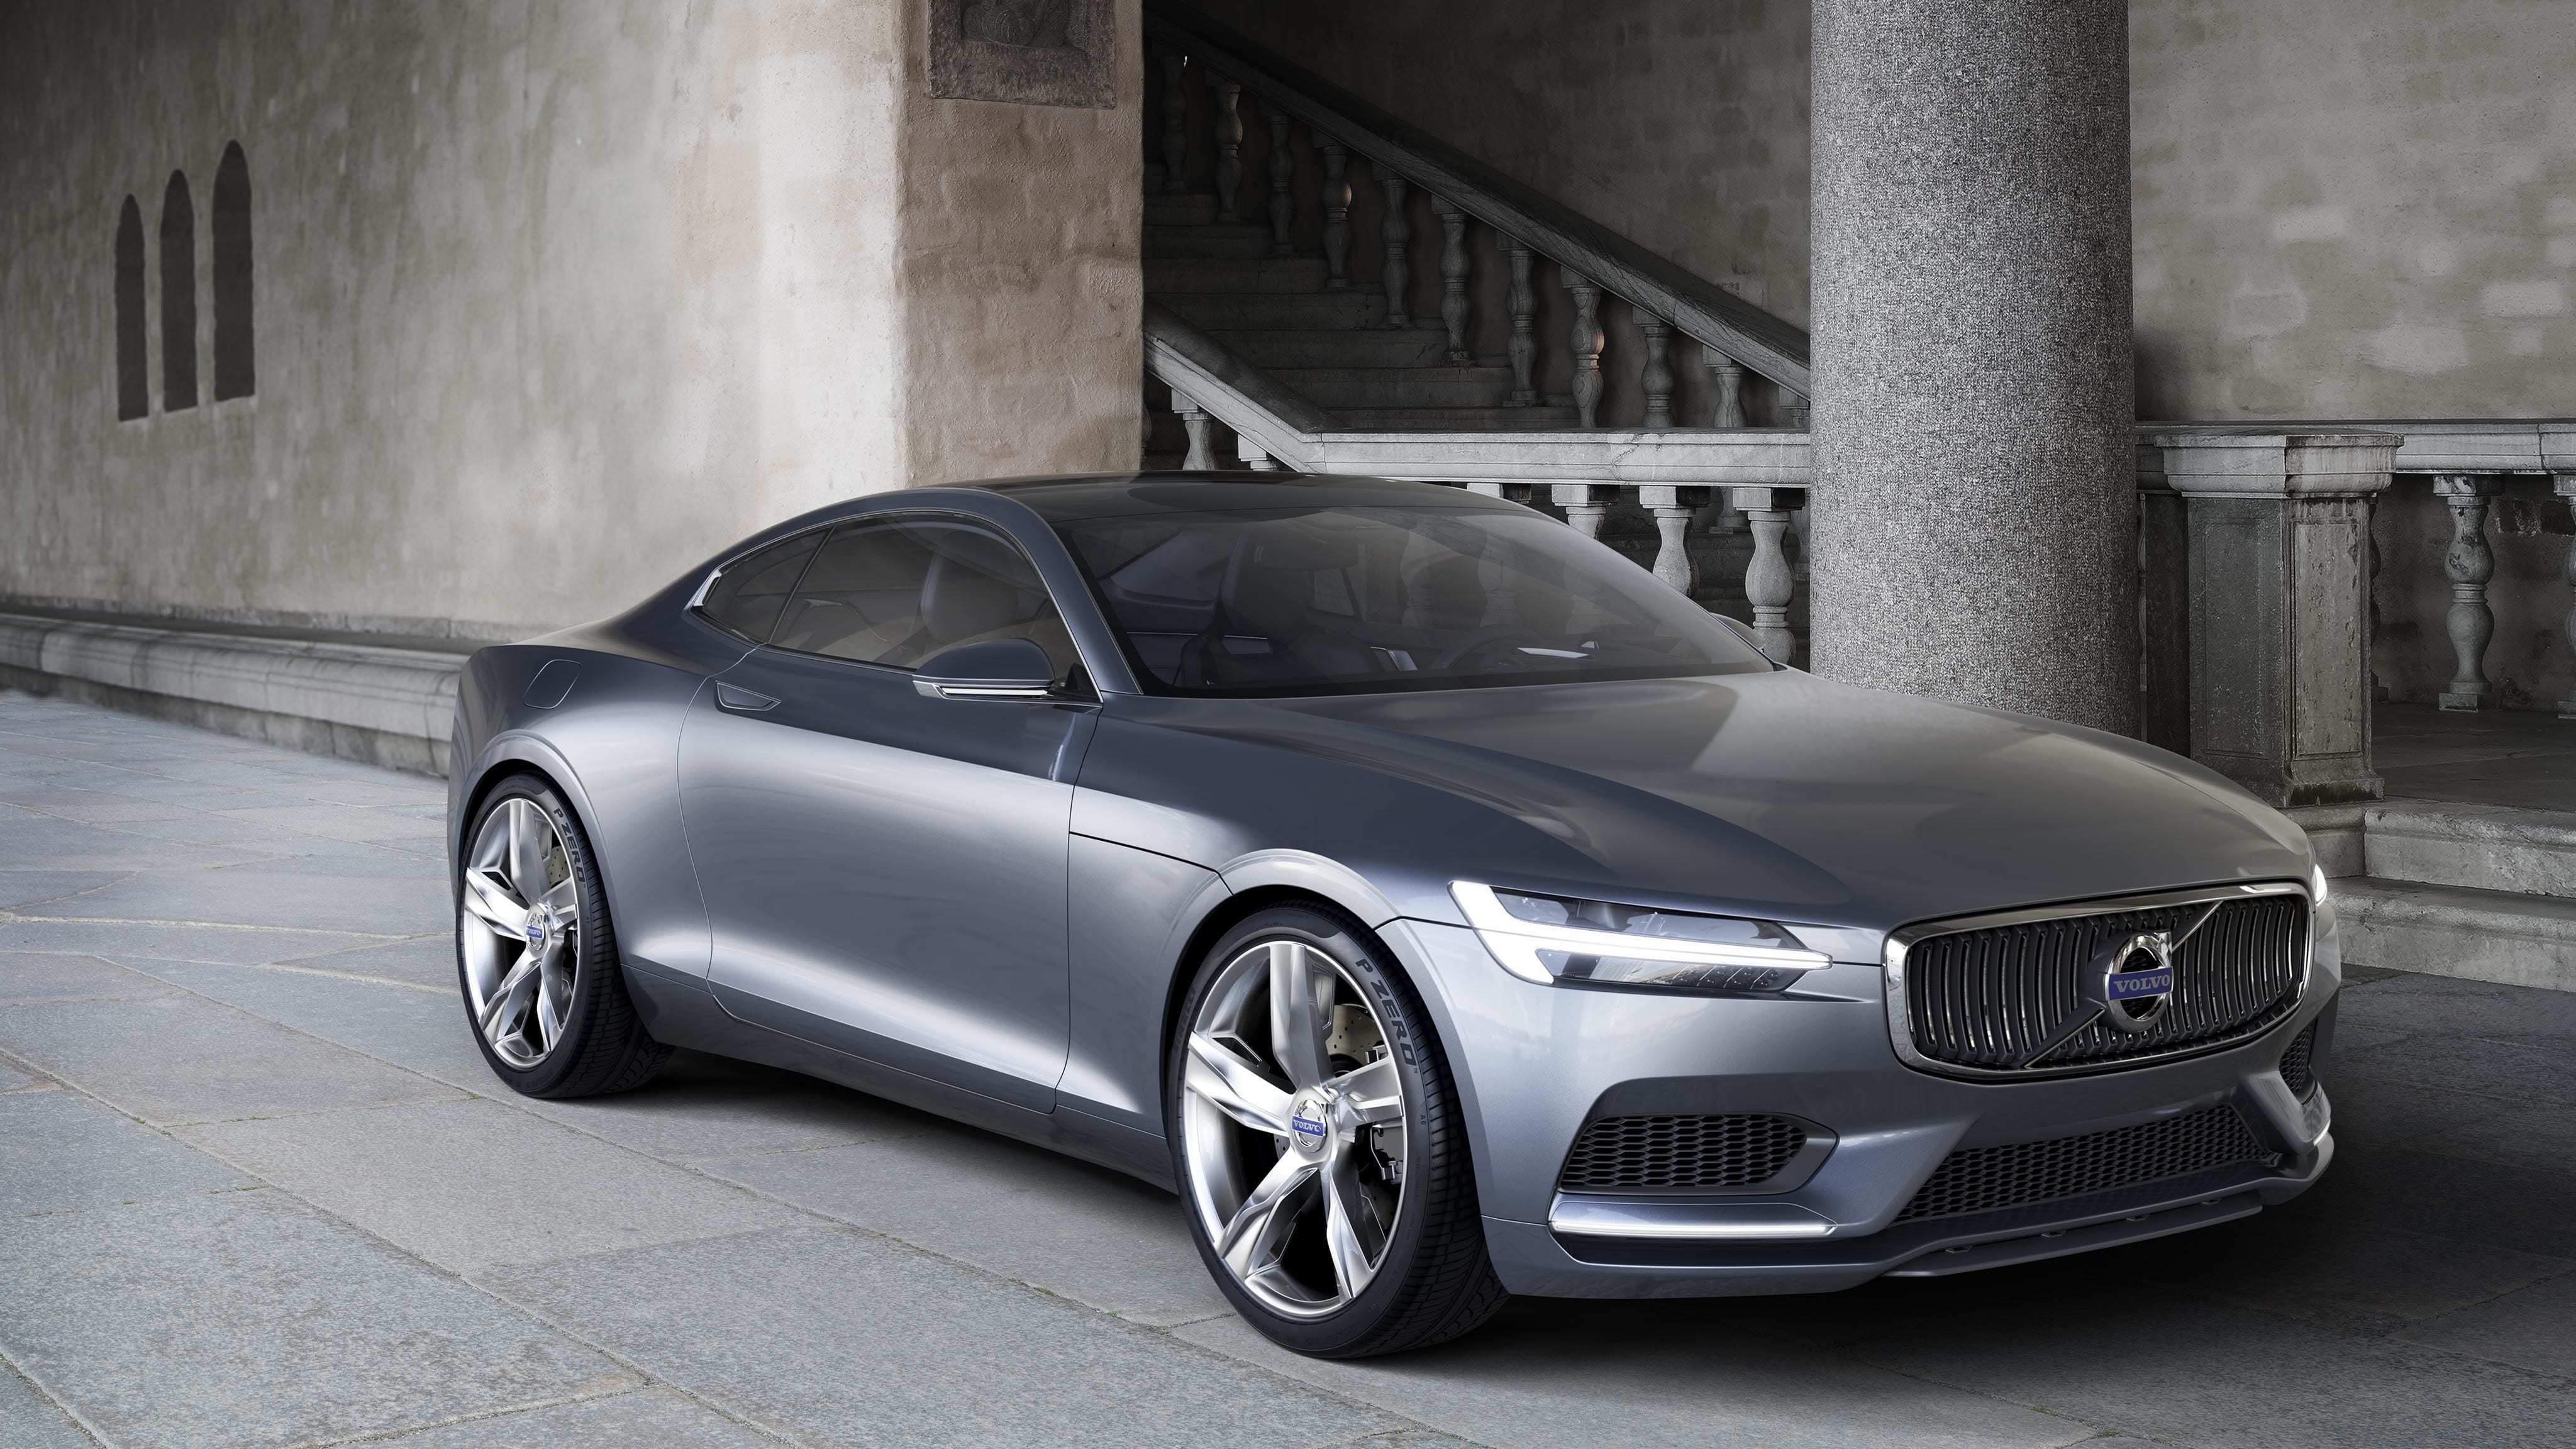 37 All New 2019 Volvo Coupe Picture with 2019 Volvo Coupe